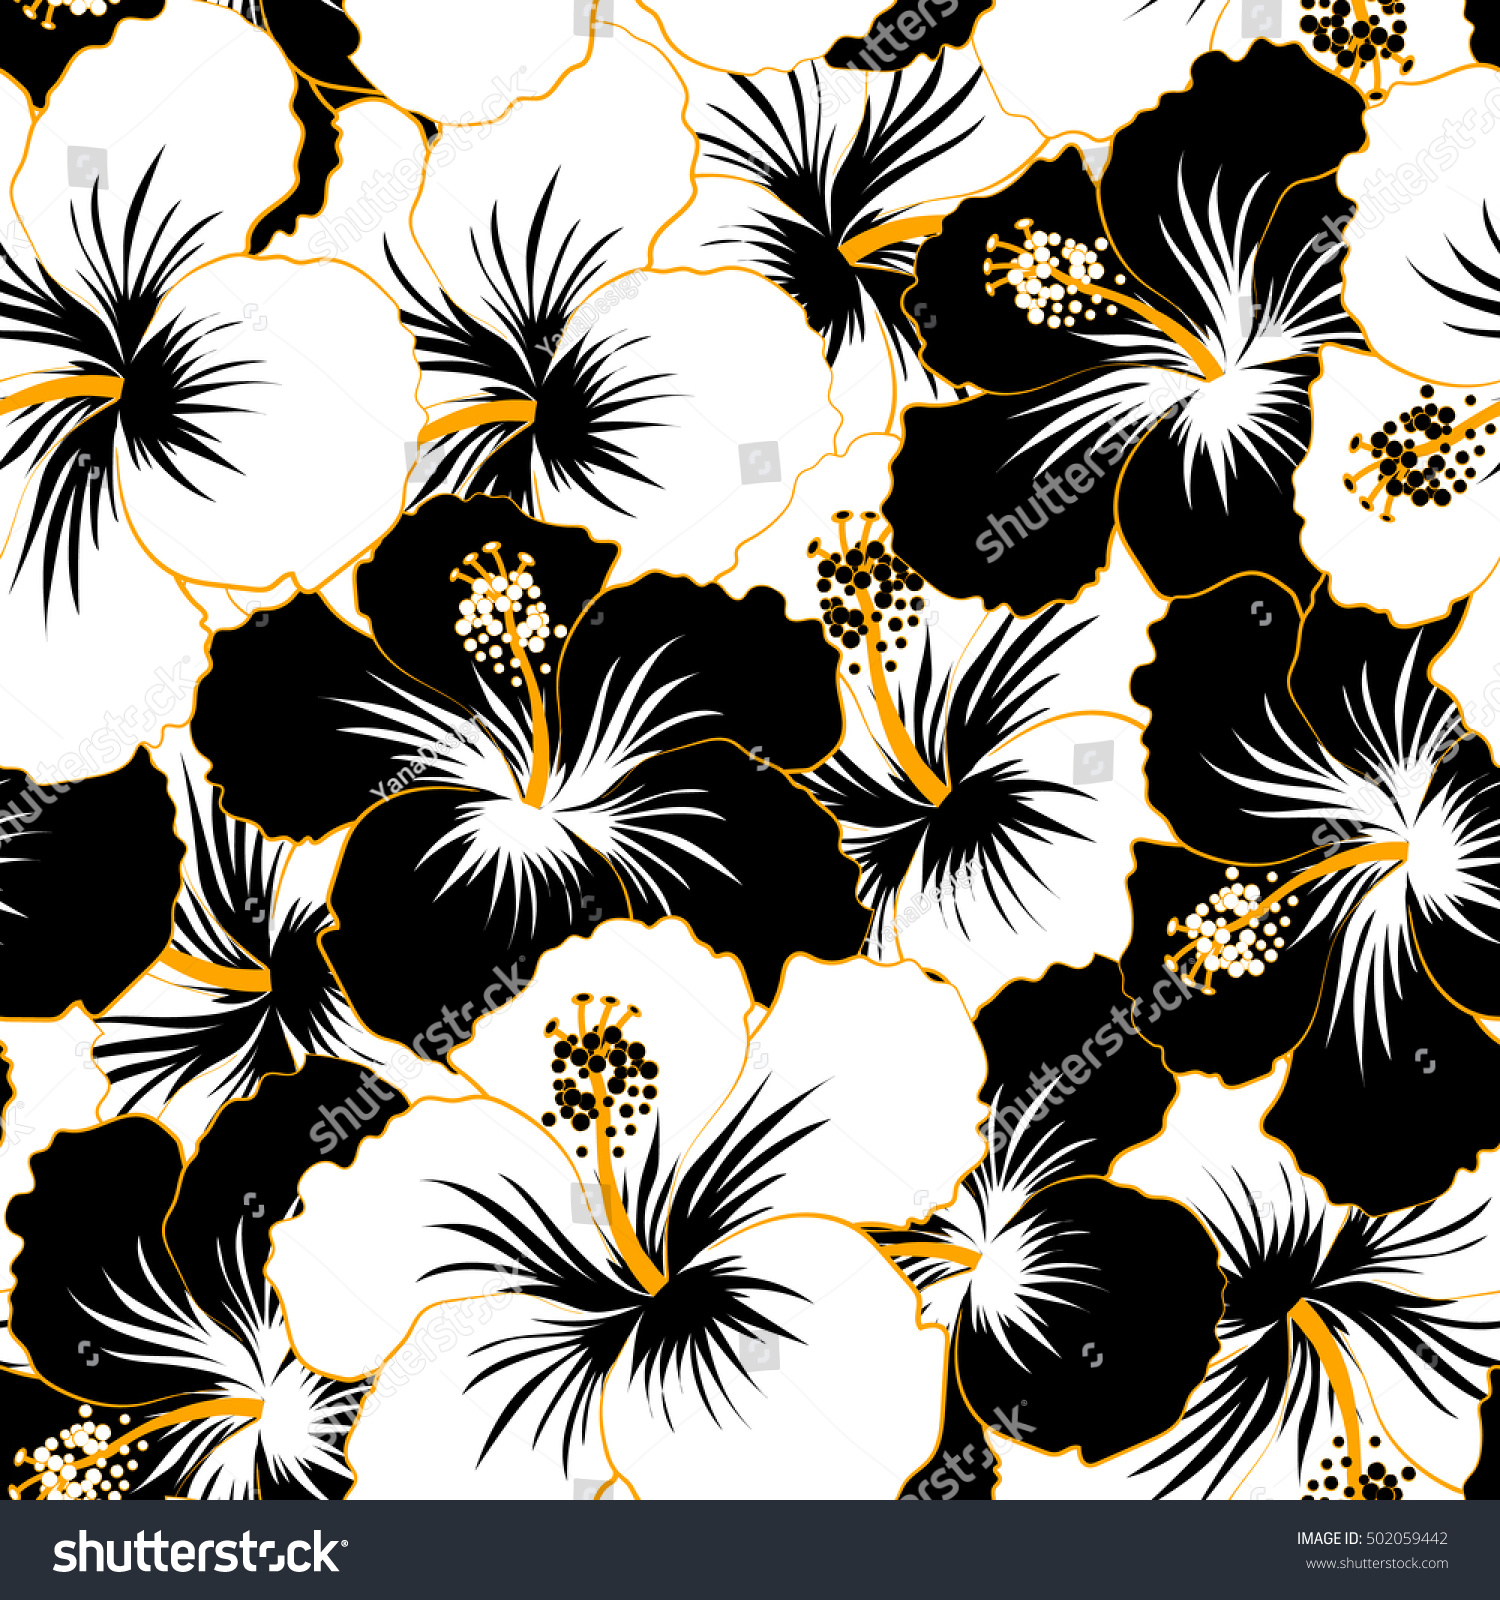 Watercolor painting effect black white hibiscus stock vector watercolor painting effect of black and white hibiscus flowers seamless pattern vector background izmirmasajfo